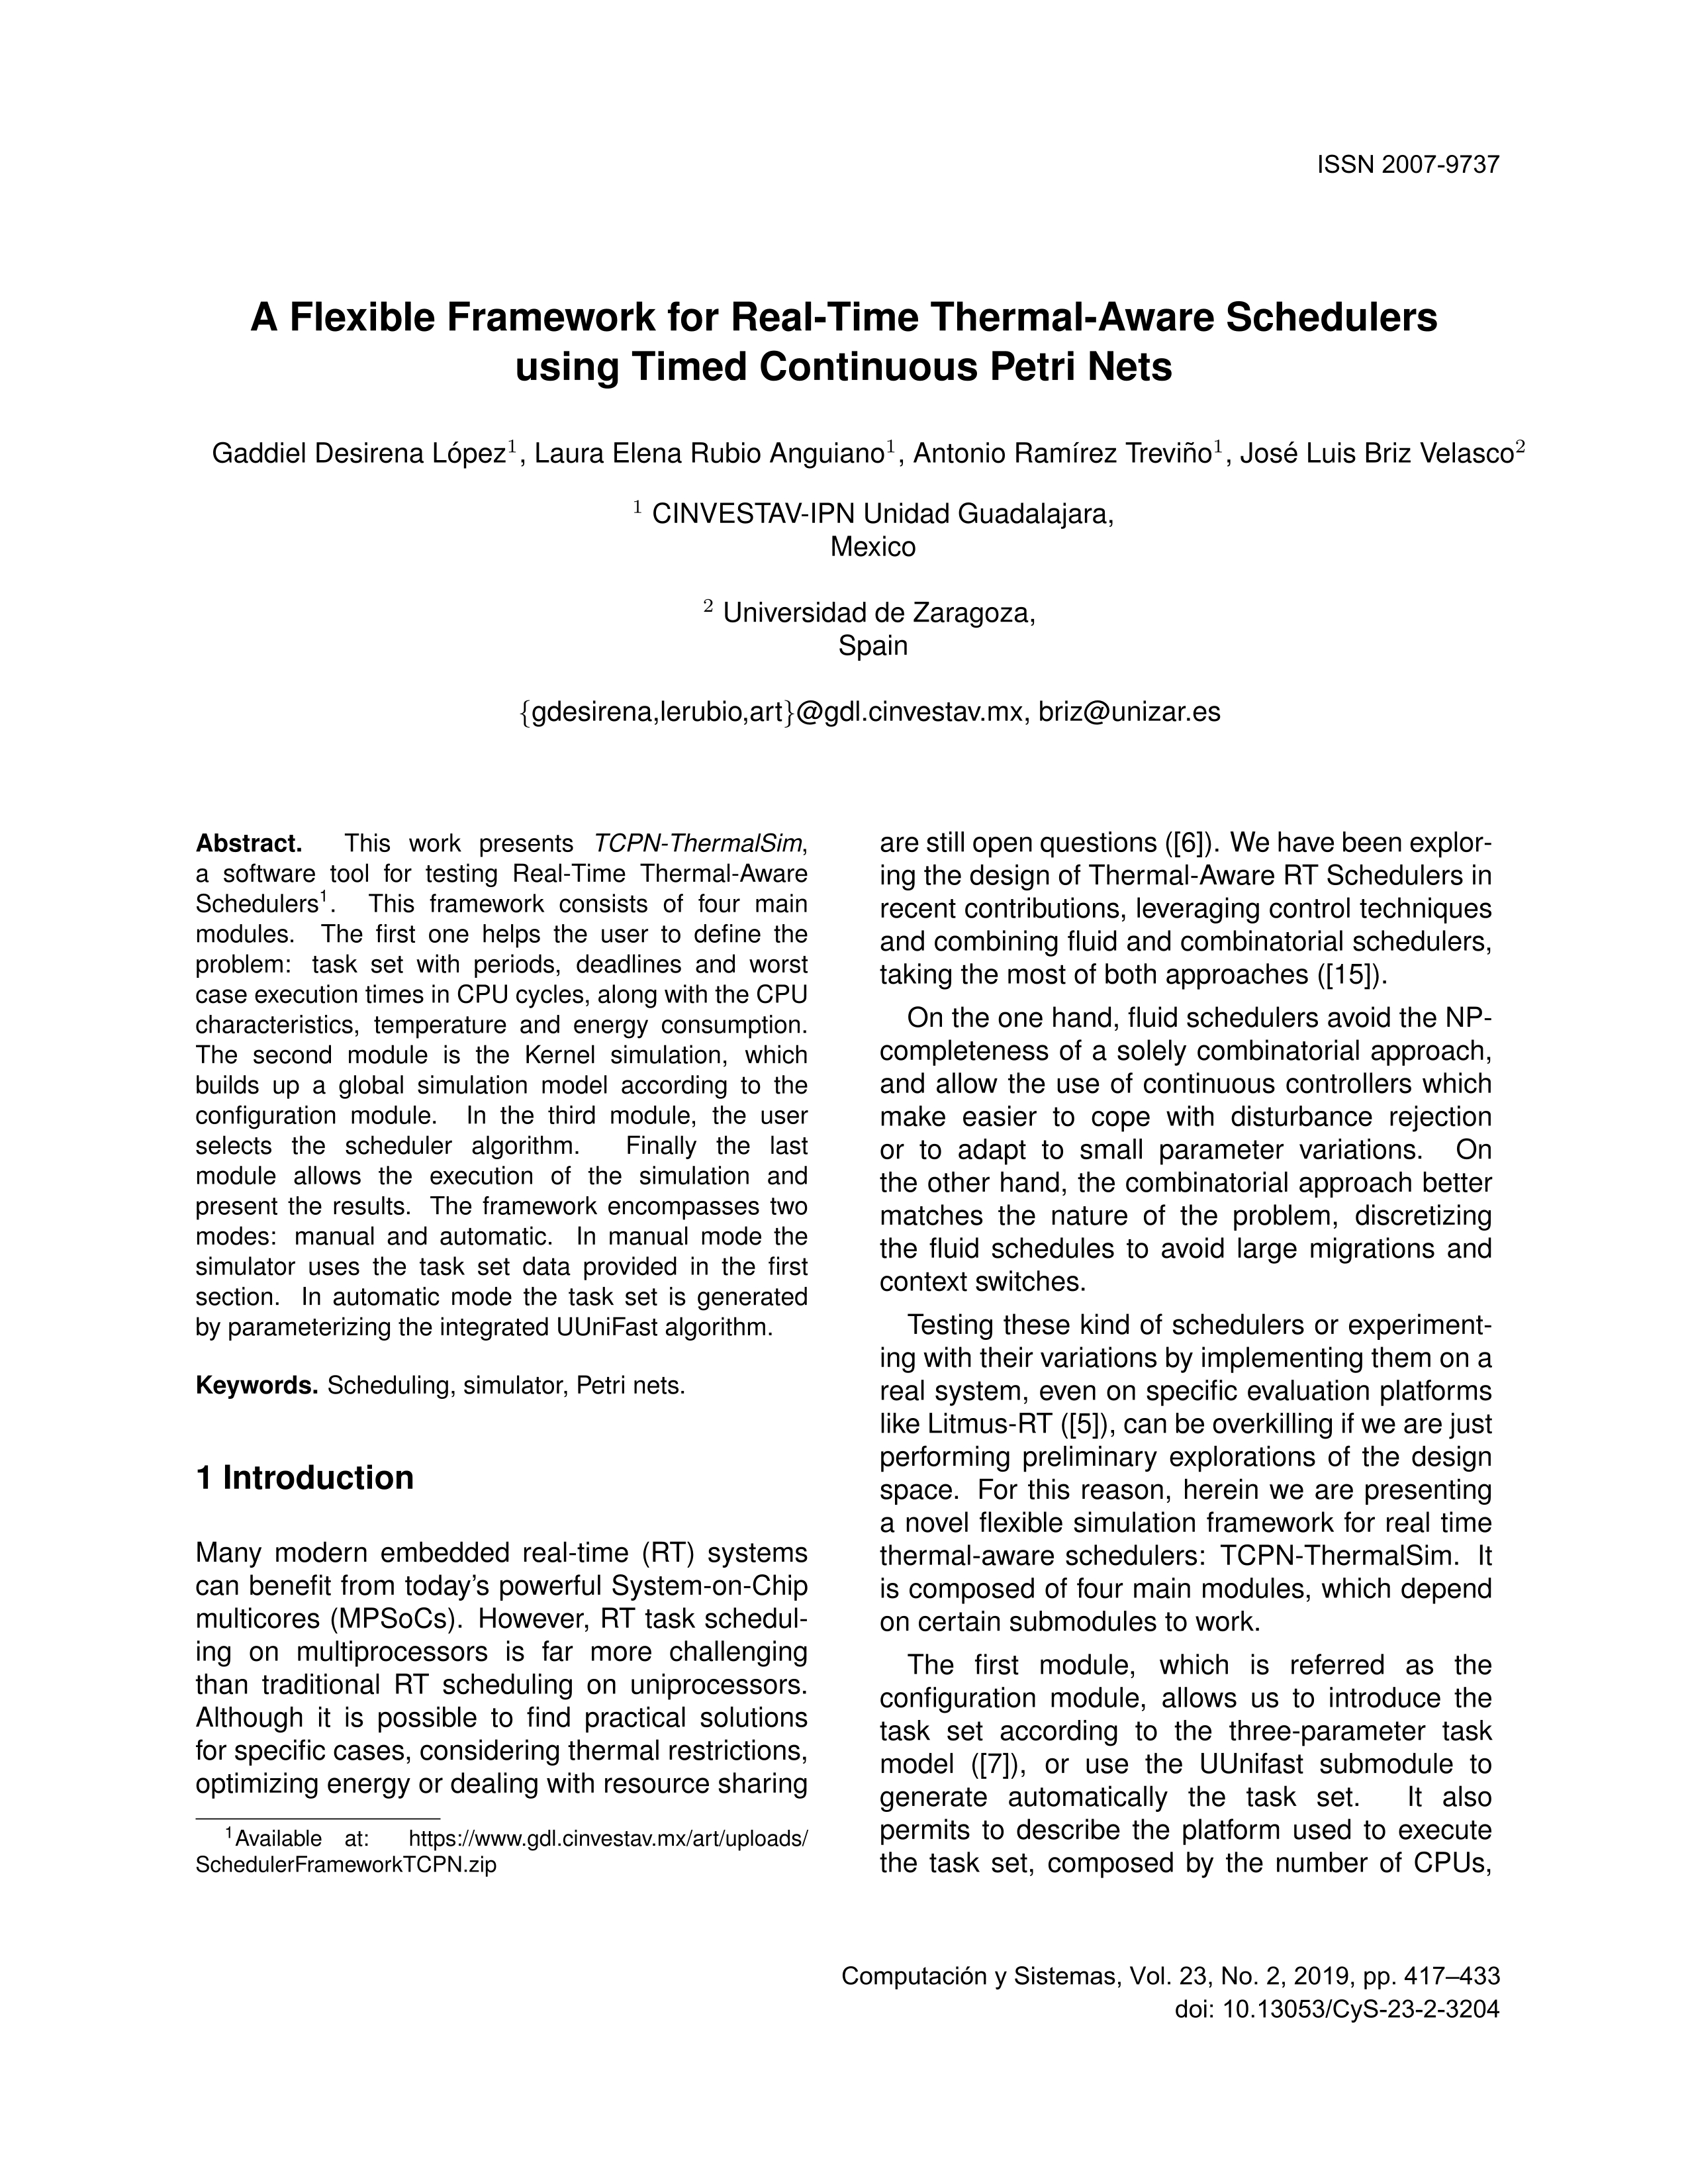 A flexible framework for real-time thermal-aware schedulers using timed continuous petri nets